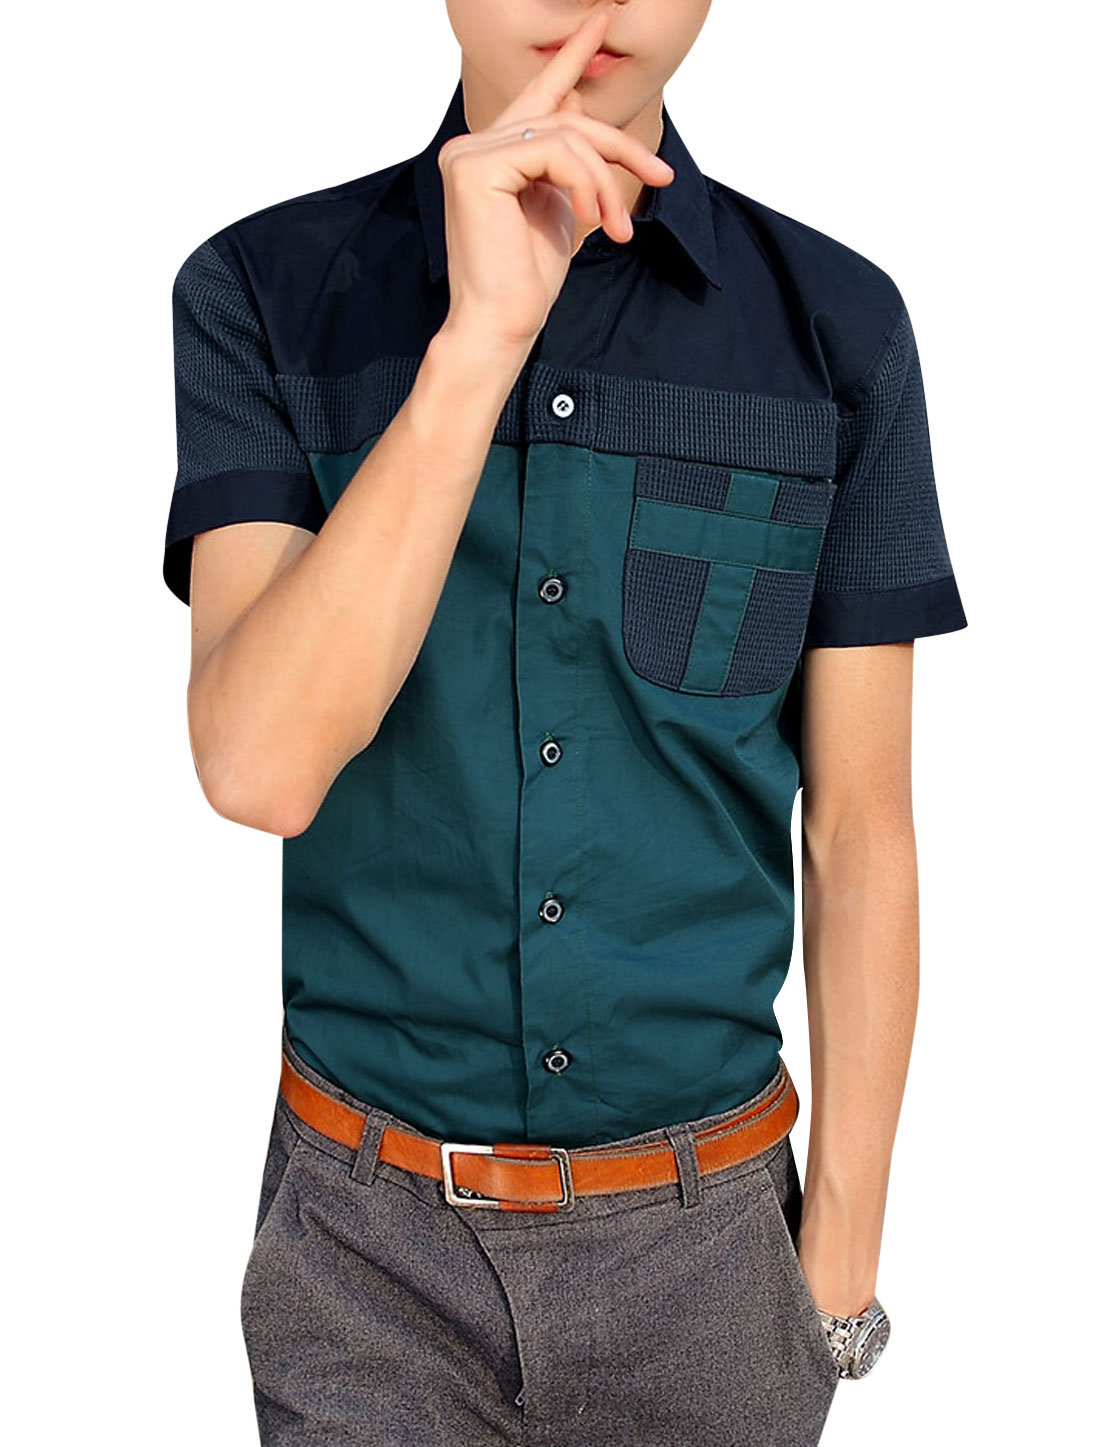 Men Leisure Button-Up Breast Pocket Two Tone Top Shirt Dark Green S